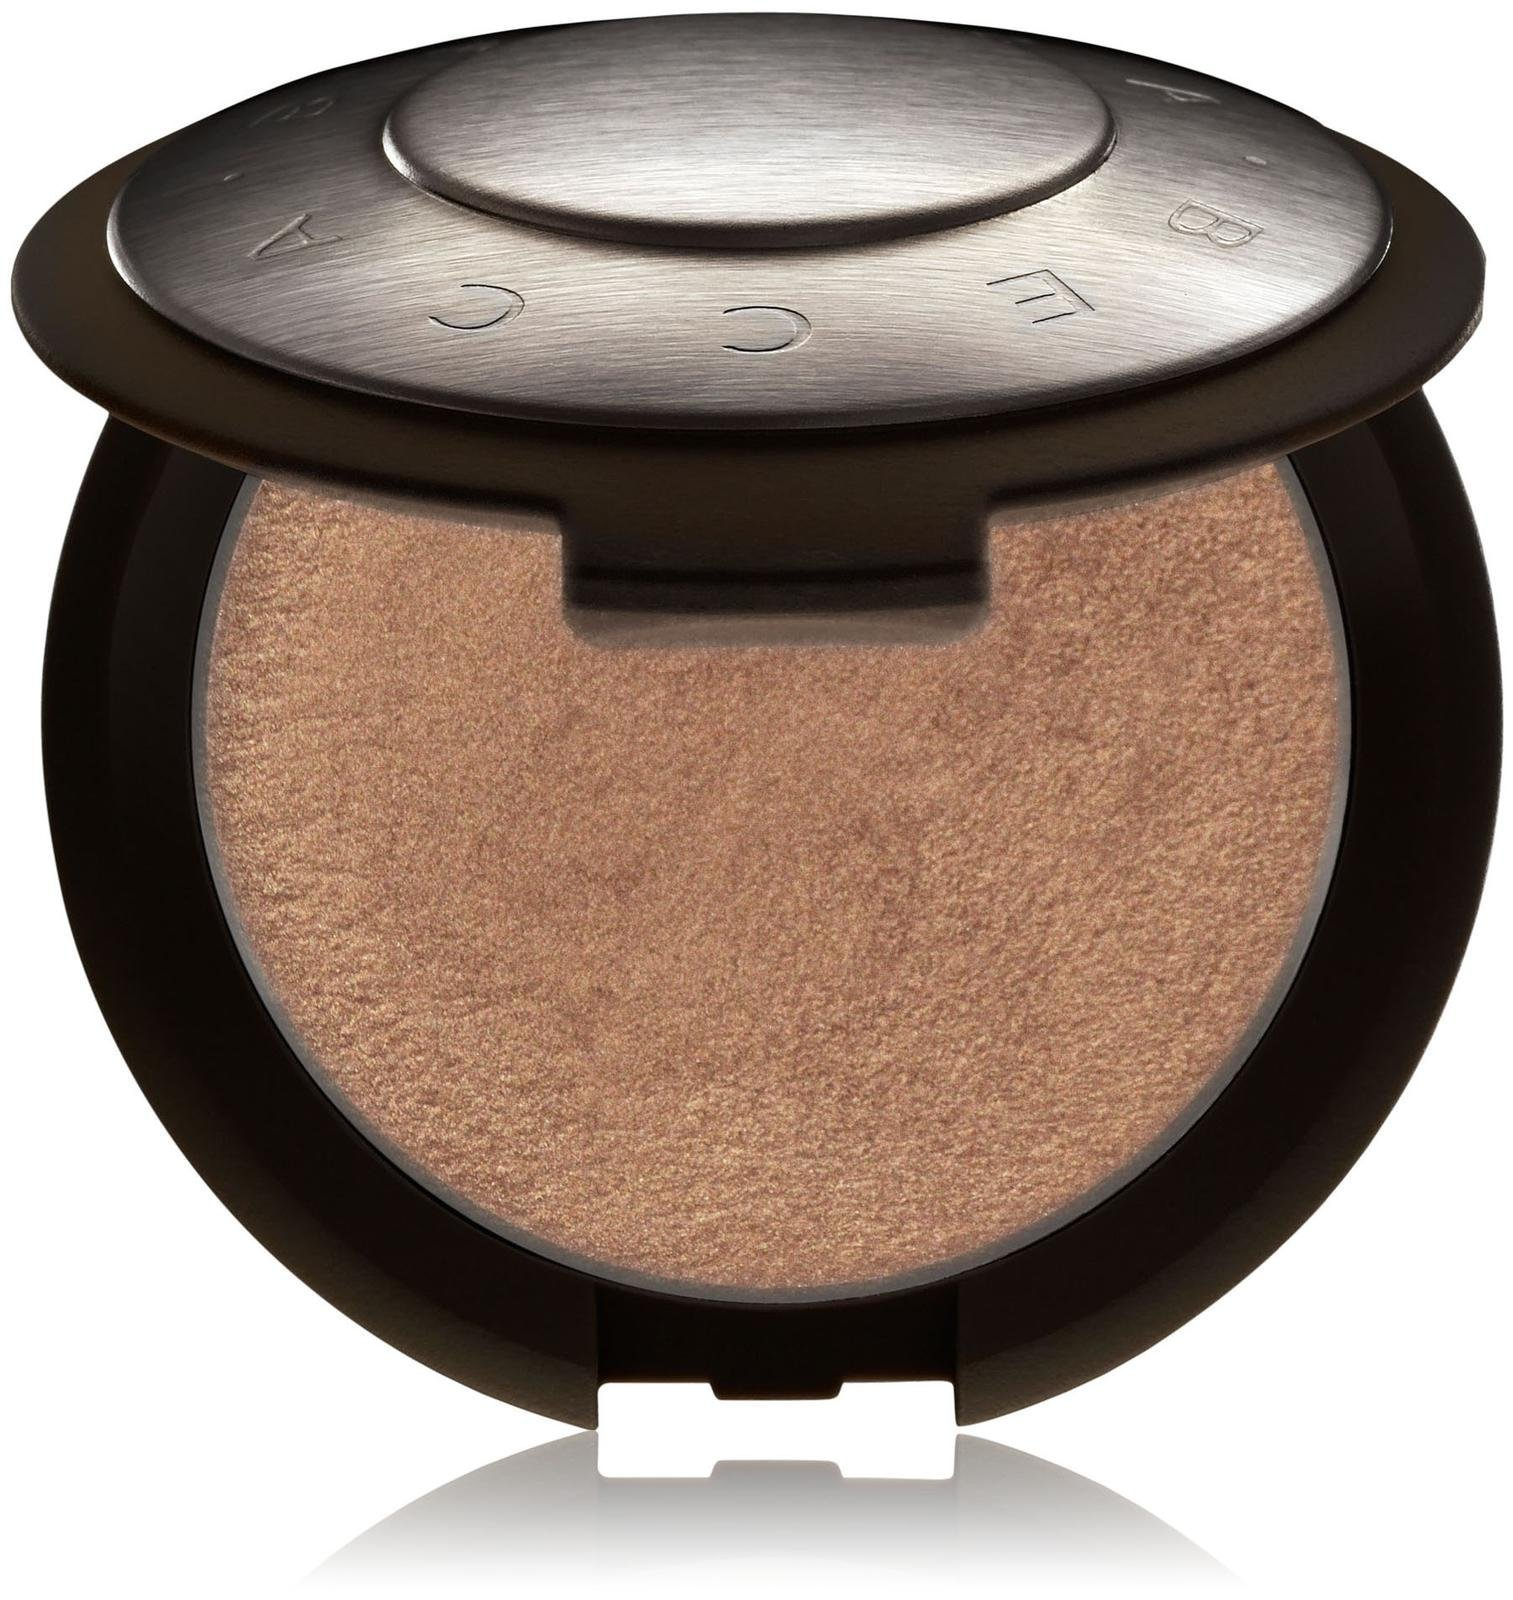 BECCA - Shimmering Skin Perfector Pressed High Lighter, Opal: Neutral, white gold with soft pink pearl, 0.28 oz. by Becca